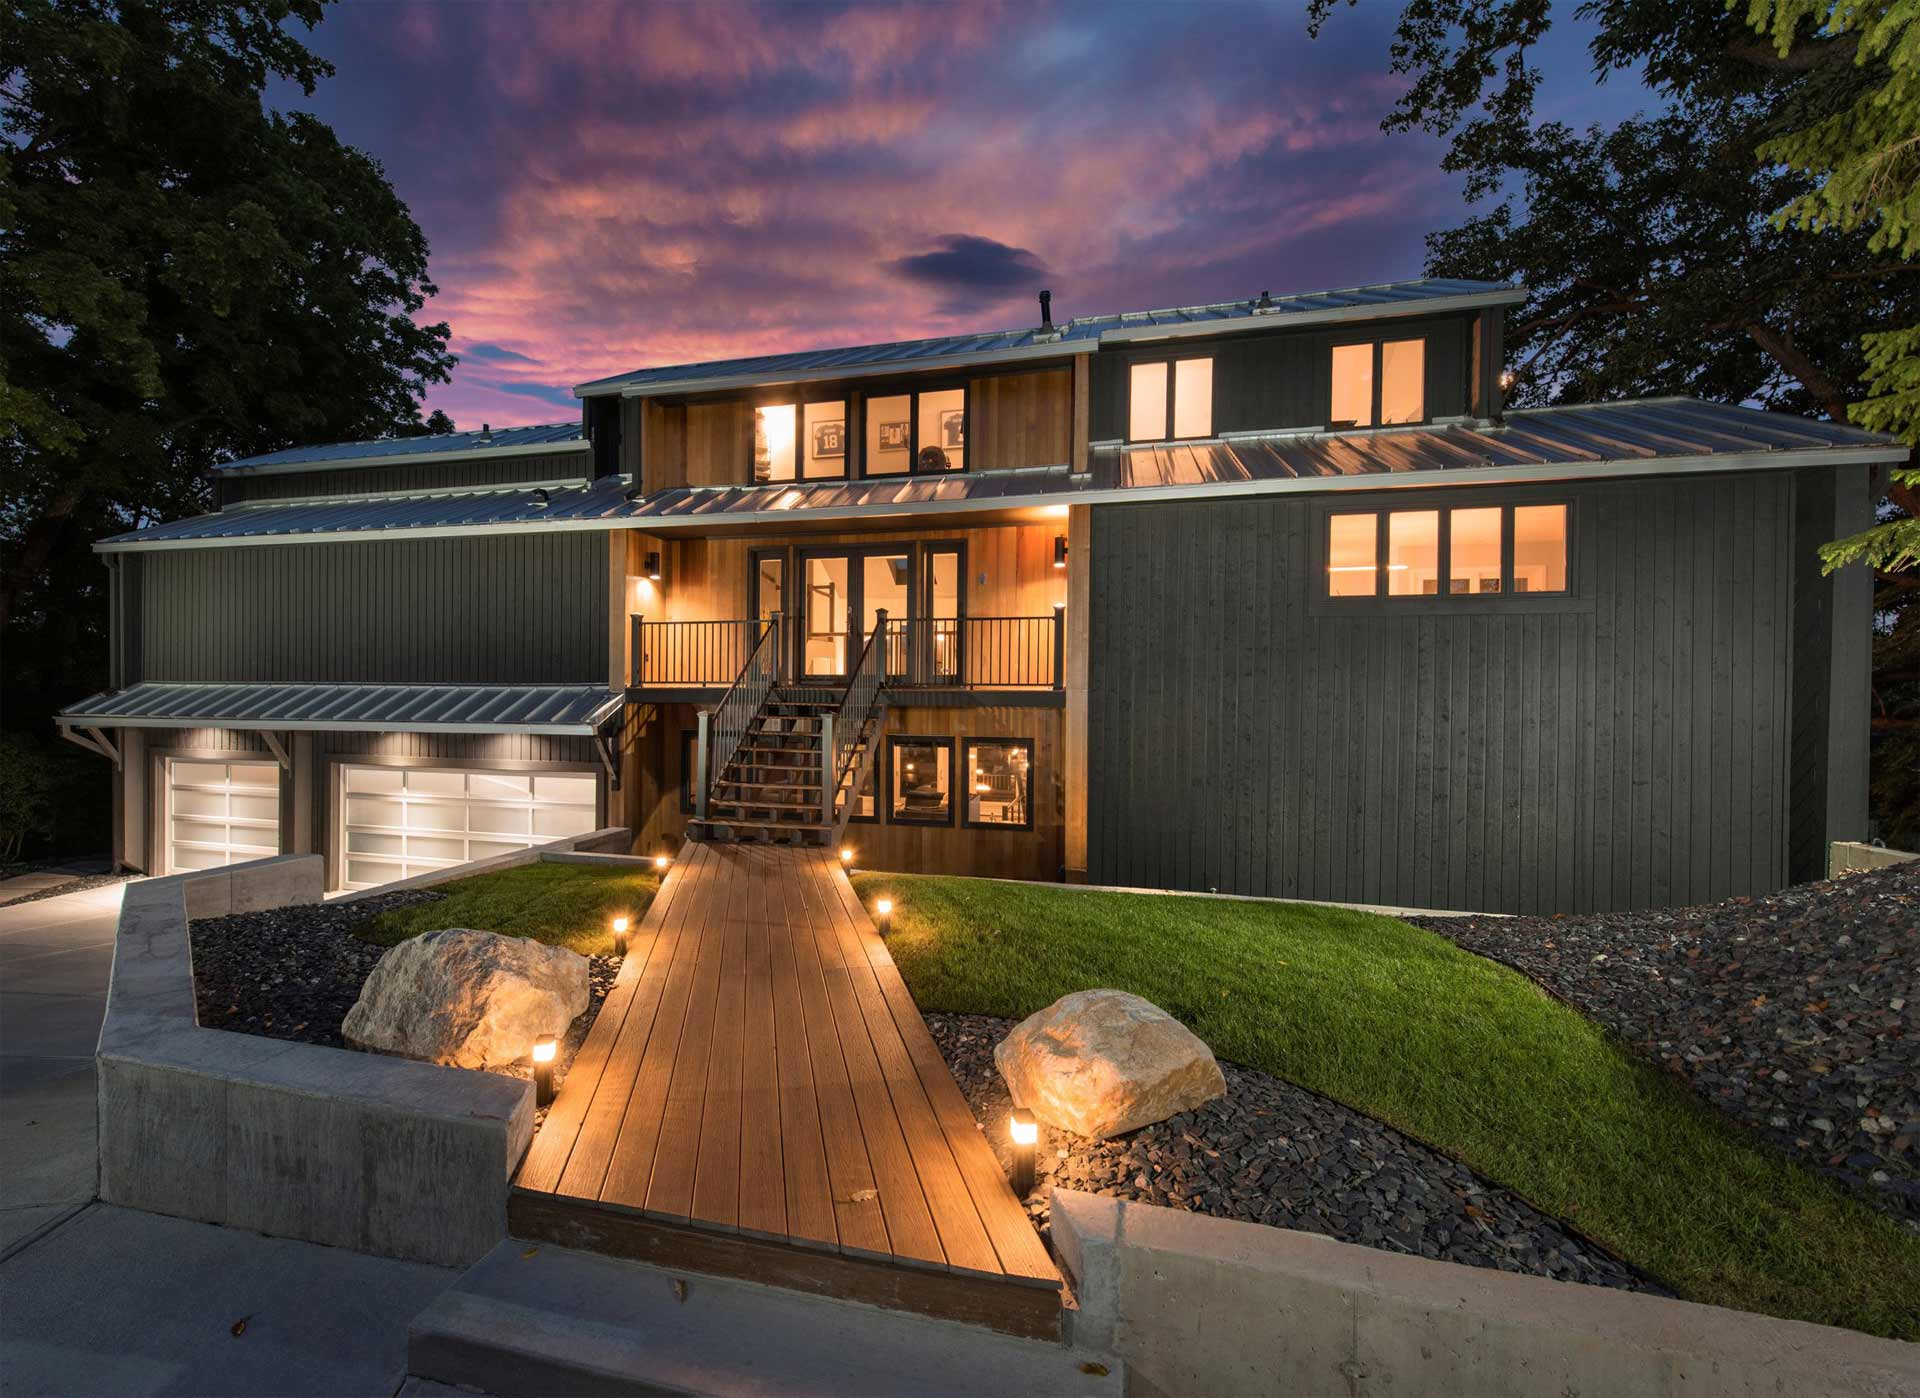 Front Entry Elevation Dusk - Reef Court - Geist Reservoir - Indianapolis, IN - Photo by Structured Photography